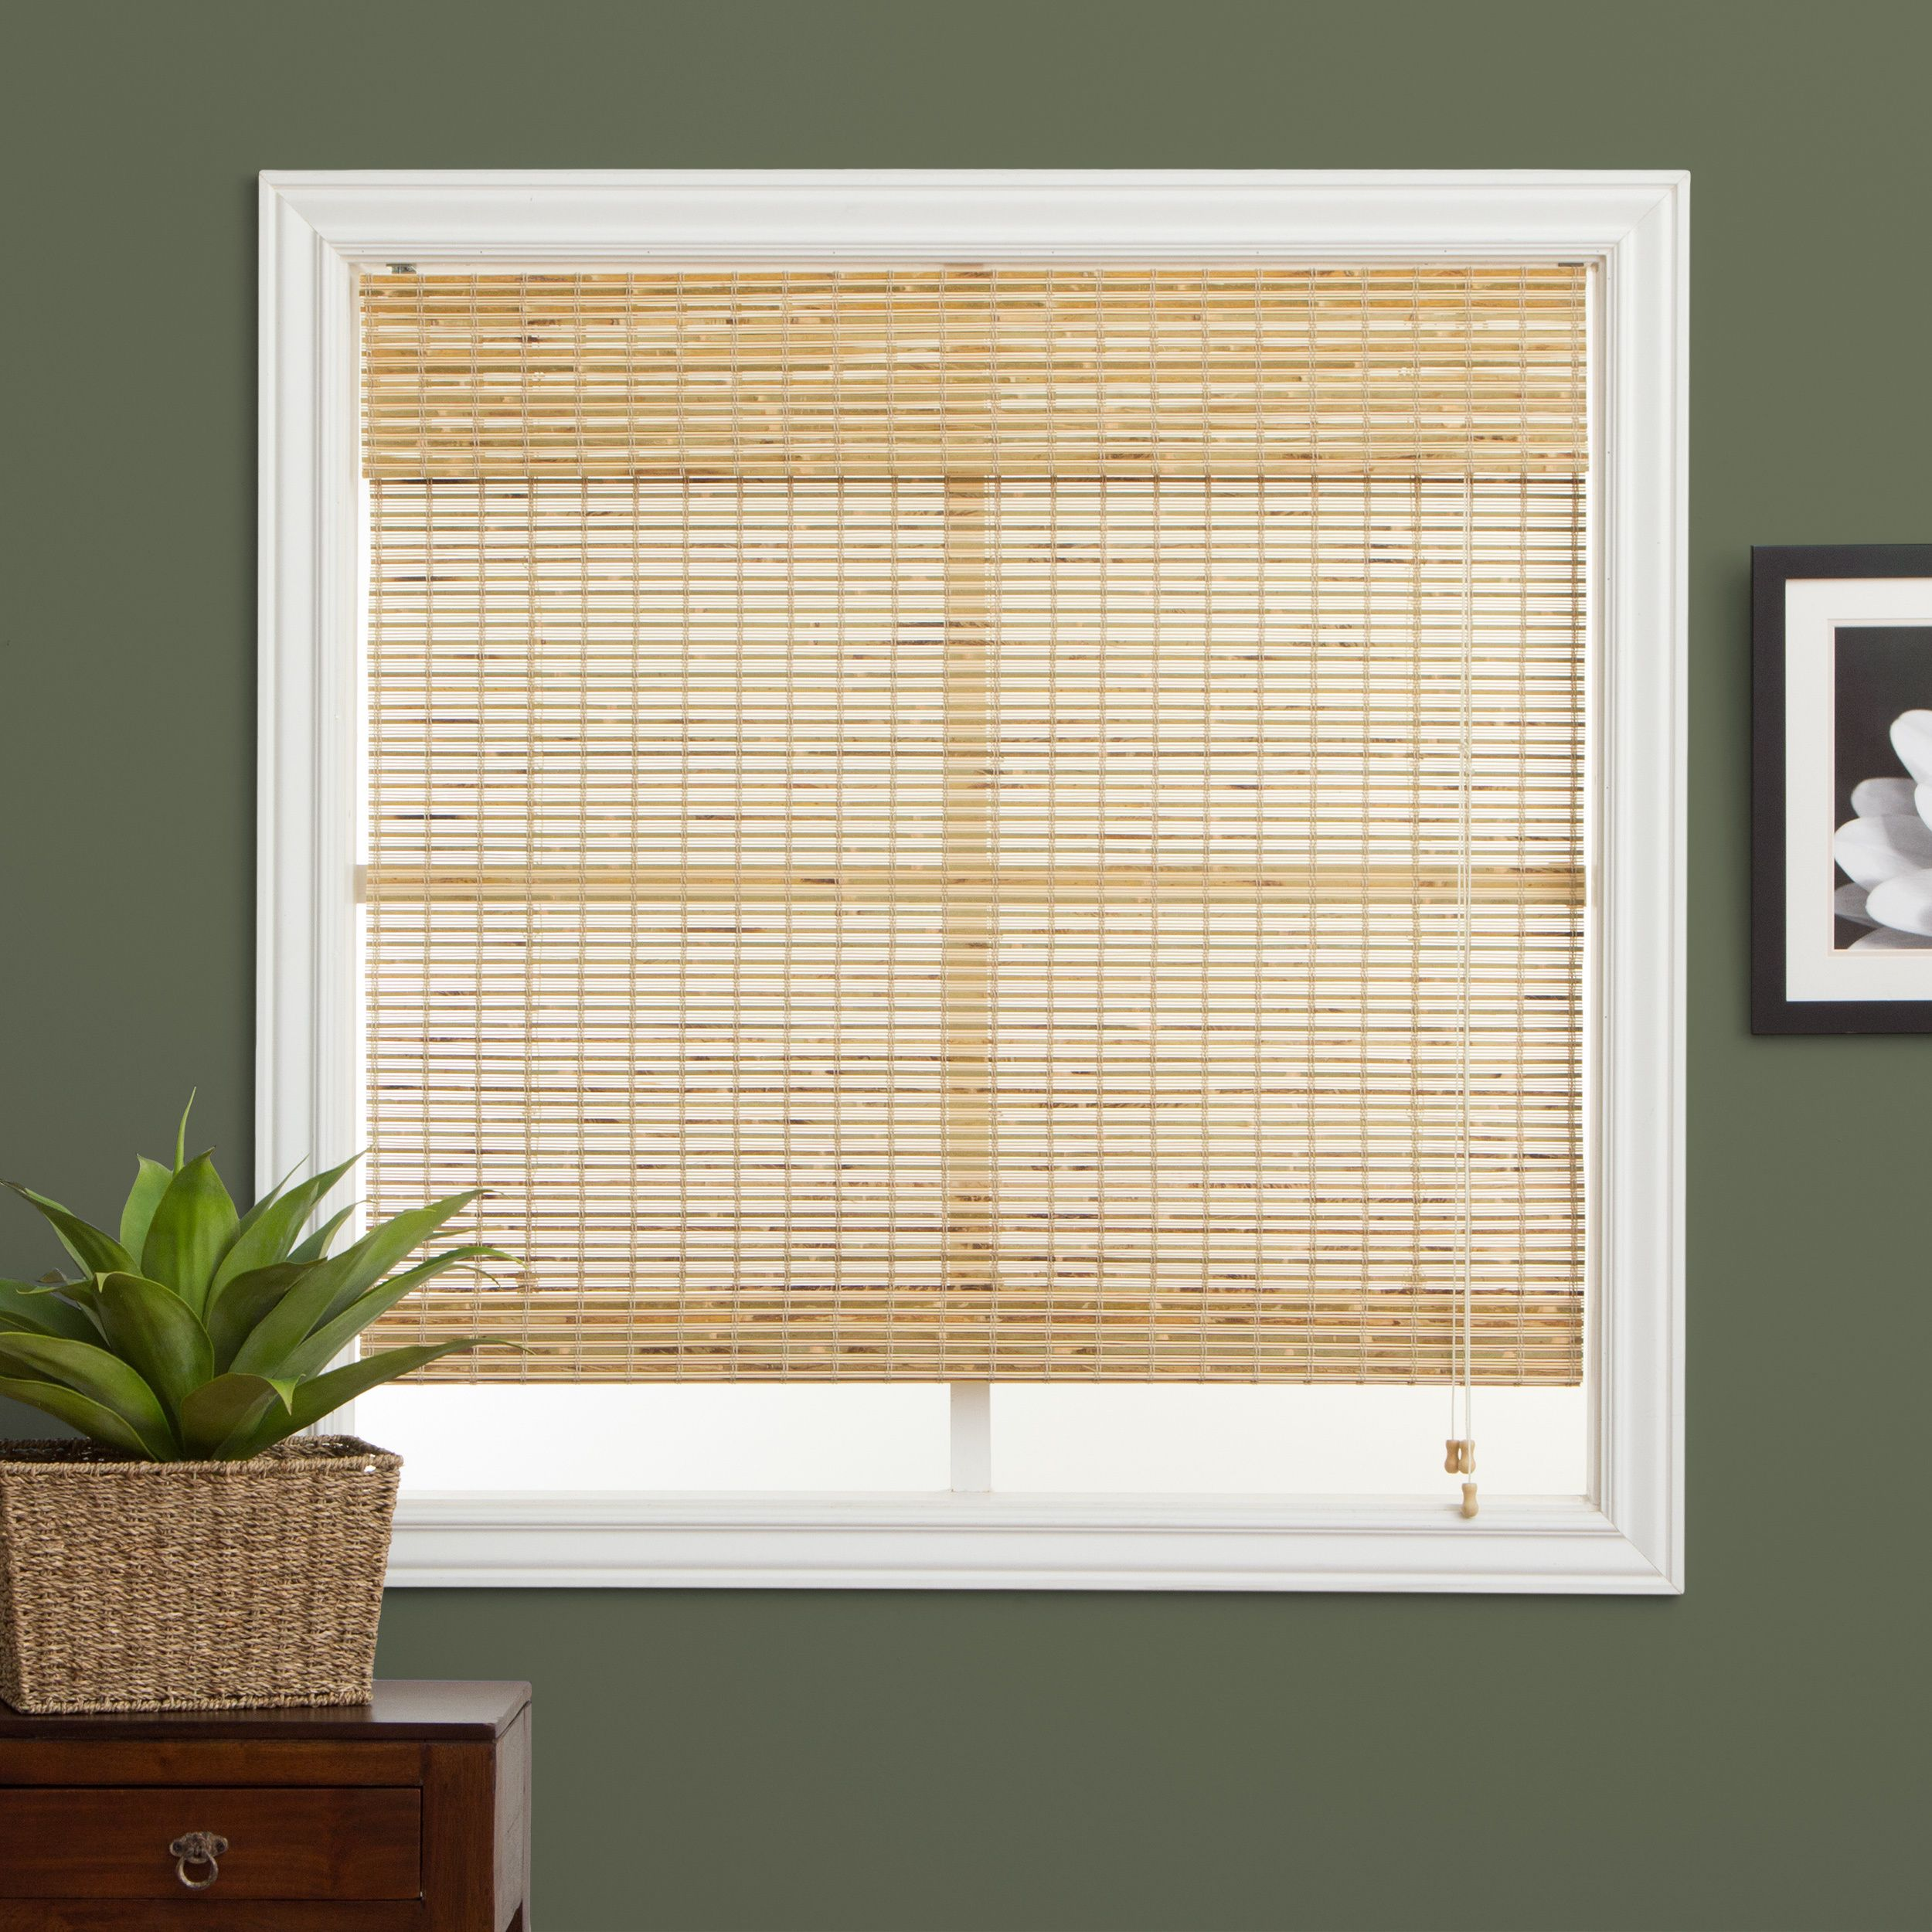 Cover Your Windows In Style With These Roman Style Tan Bamboo